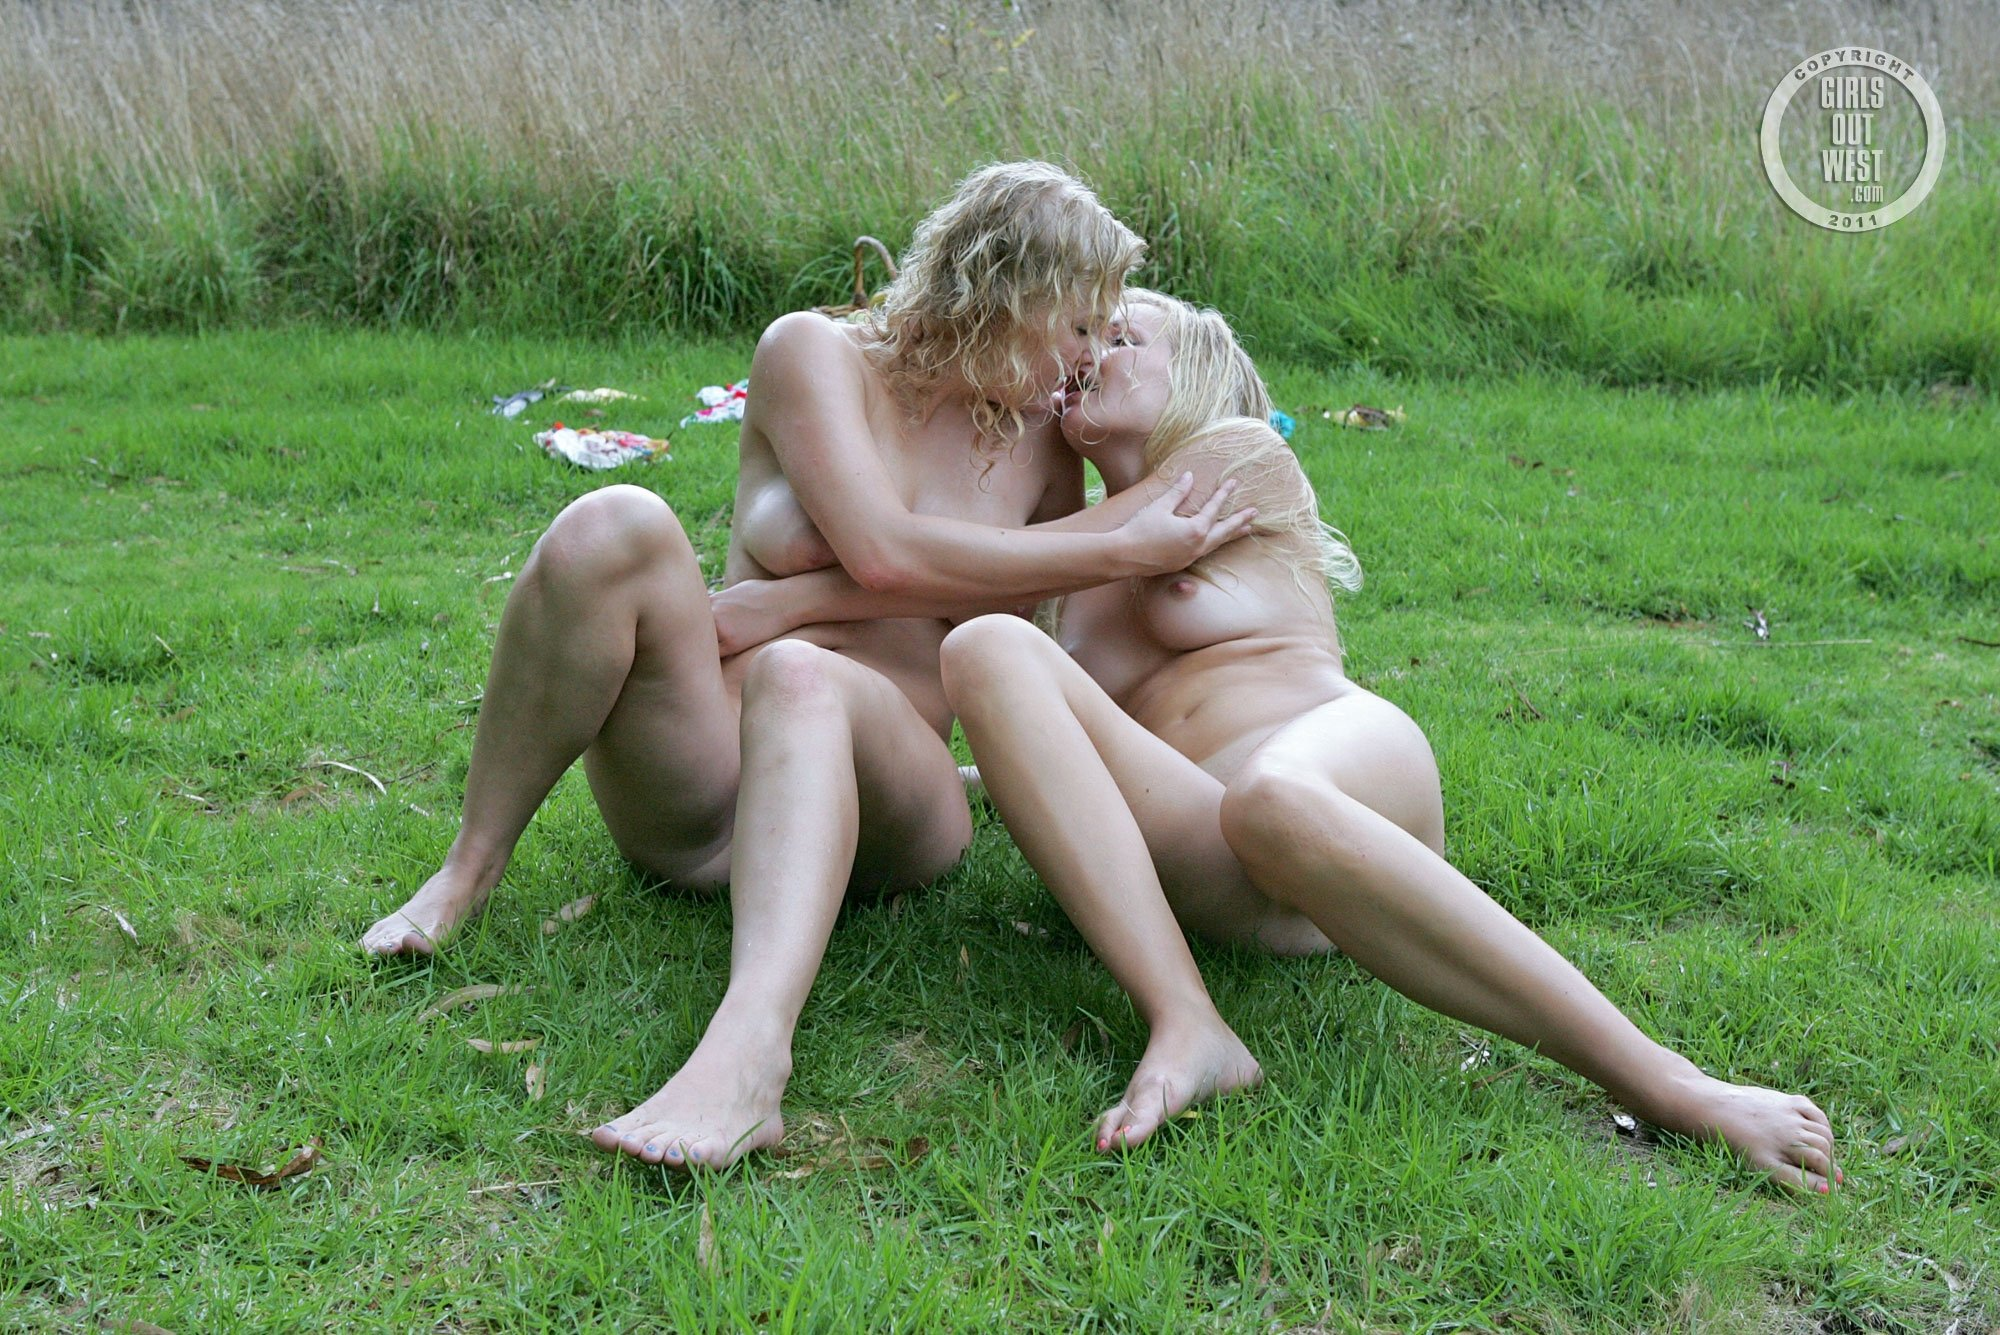 watch my gf lesbian videos there